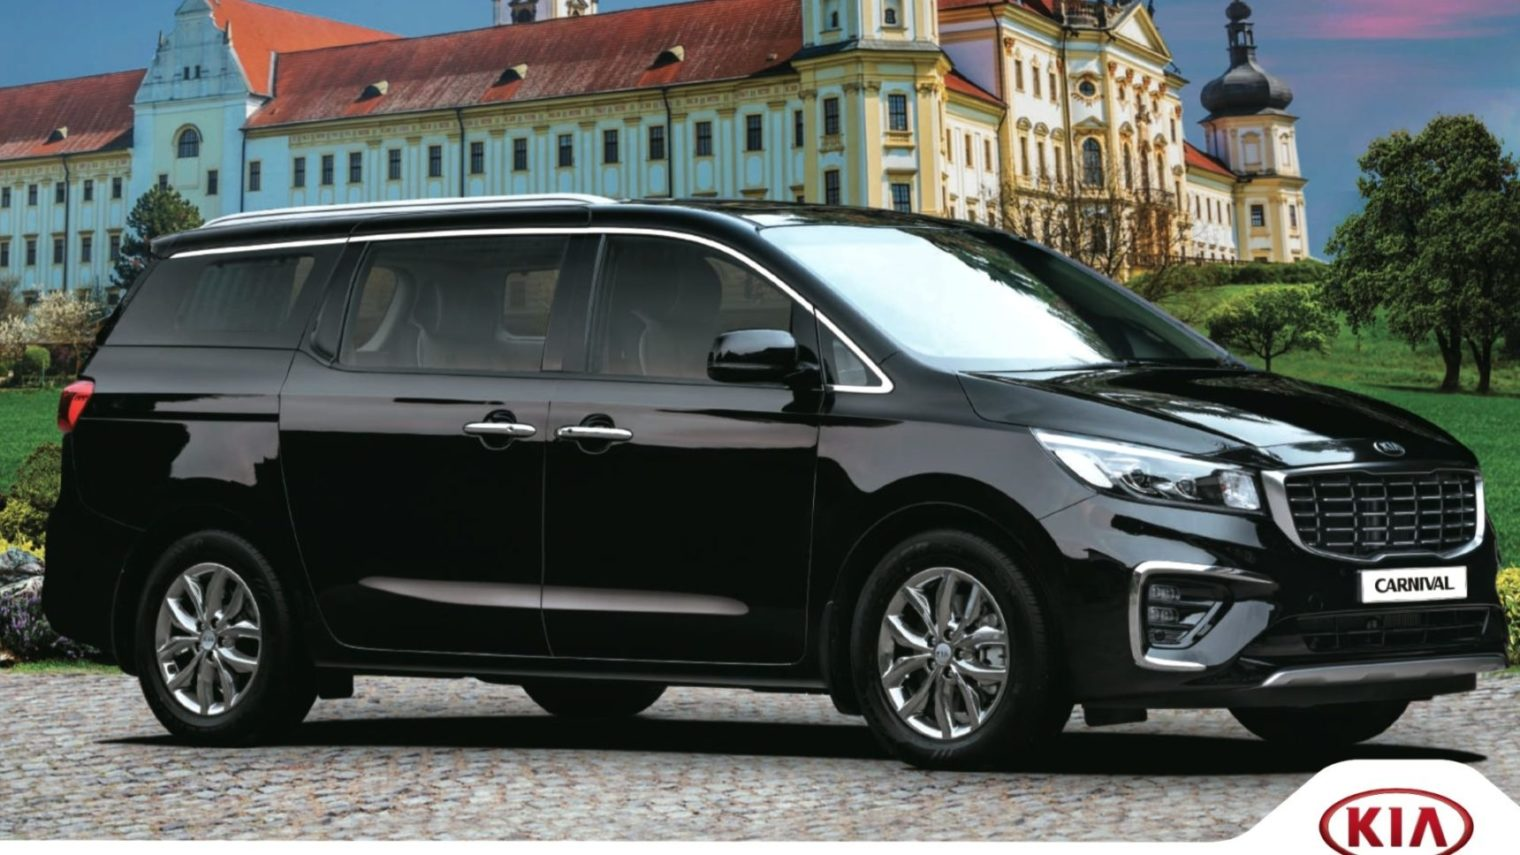 Kia Carnival To Launch In India In 3 Variants, Features Revealed